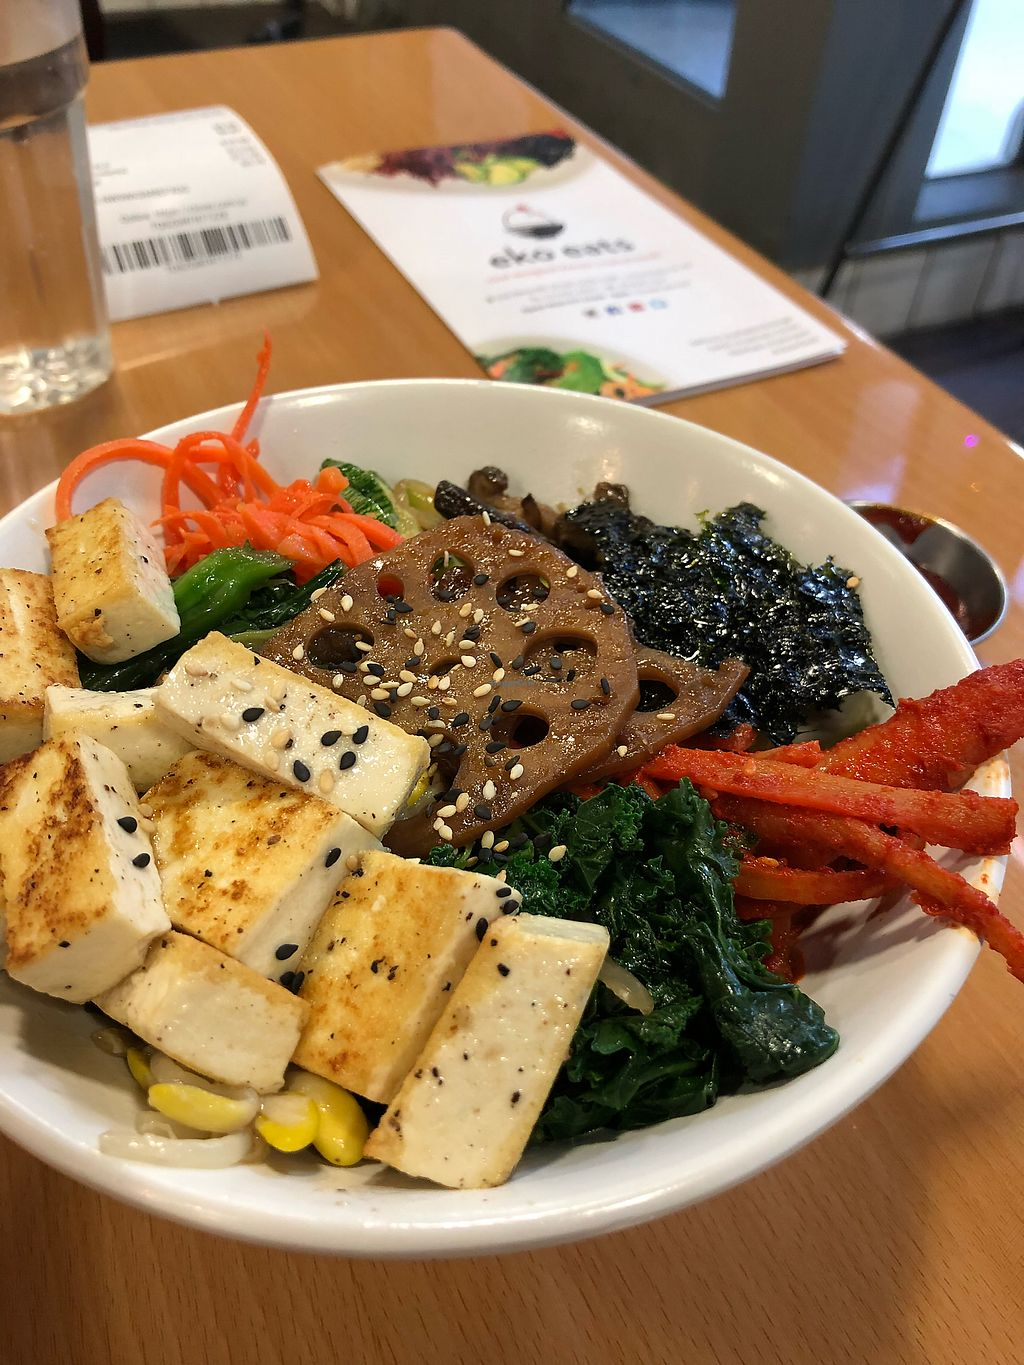 """Photo of Eko Eats  by <a href=""""/members/profile/Greenmilo"""">Greenmilo</a> <br/>Roasted tofu Bibimbap <br/> December 21, 2017  - <a href='/contact/abuse/image/84627/337870'>Report</a>"""